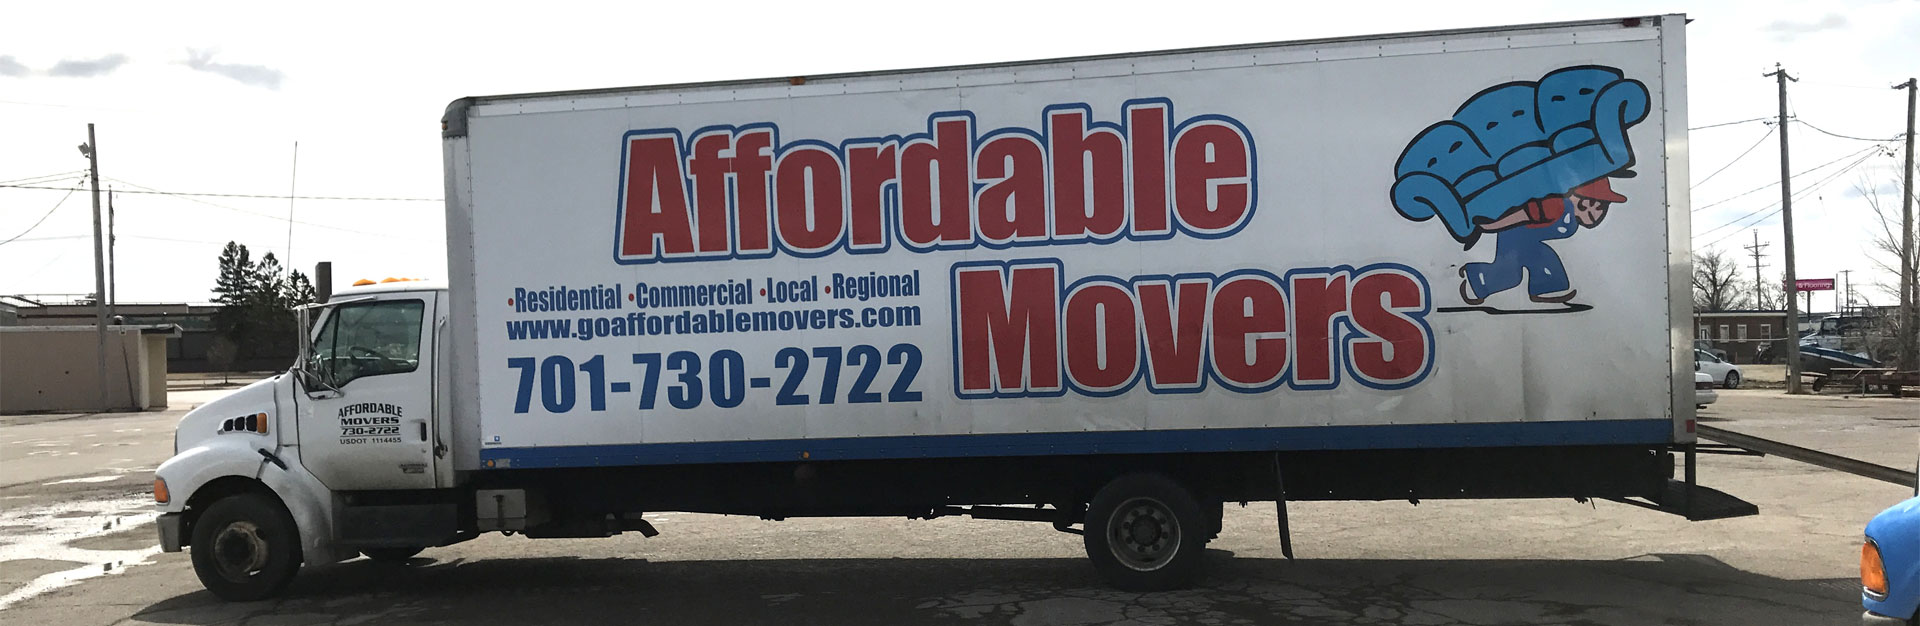 Affordable Movers - Our Services